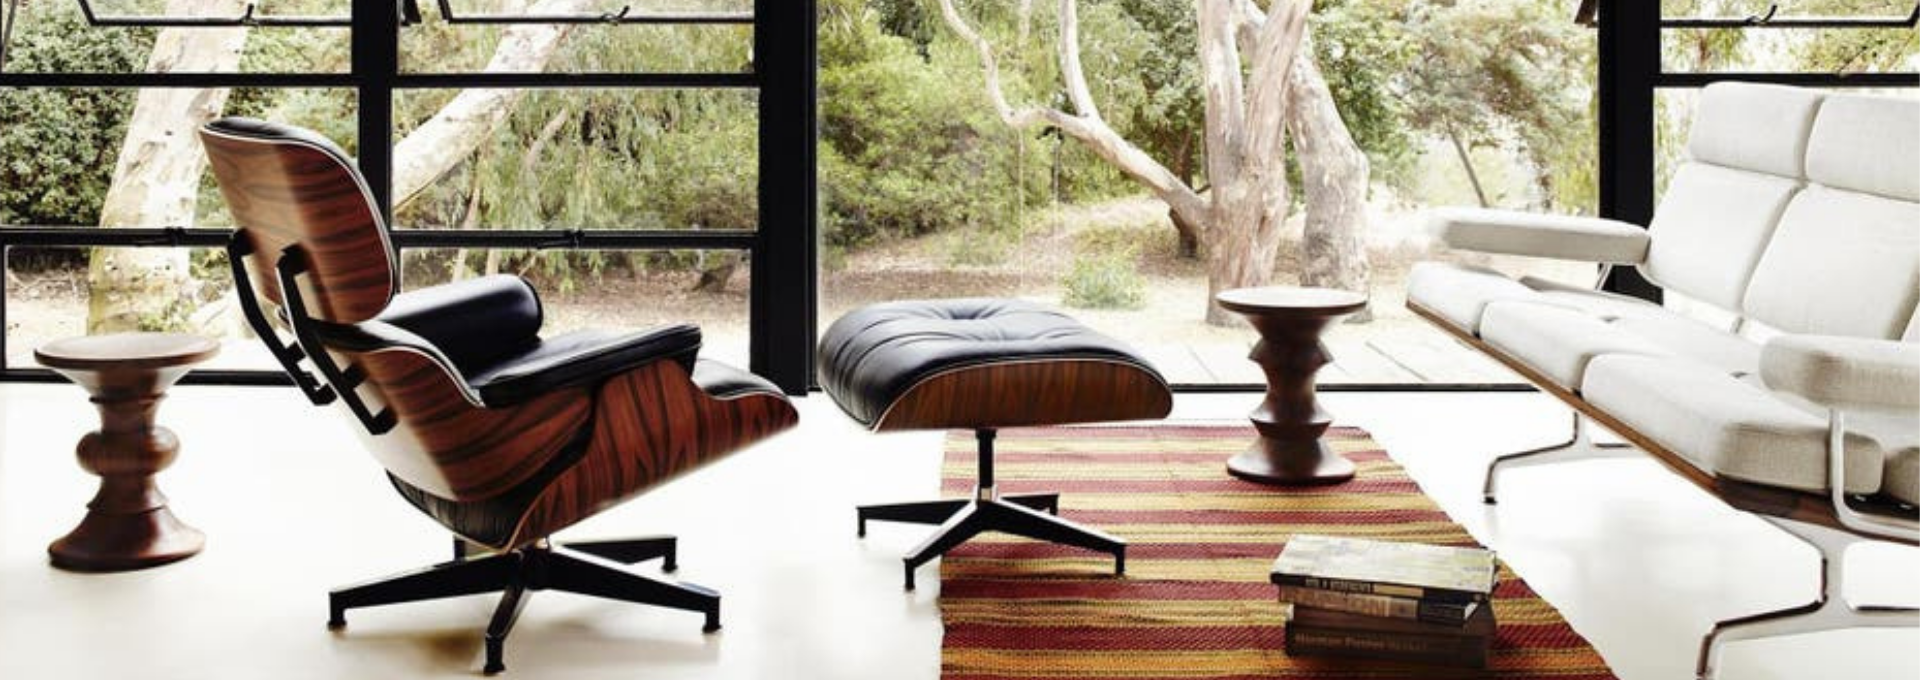 5 iconic furniture pieces that every design lover should own